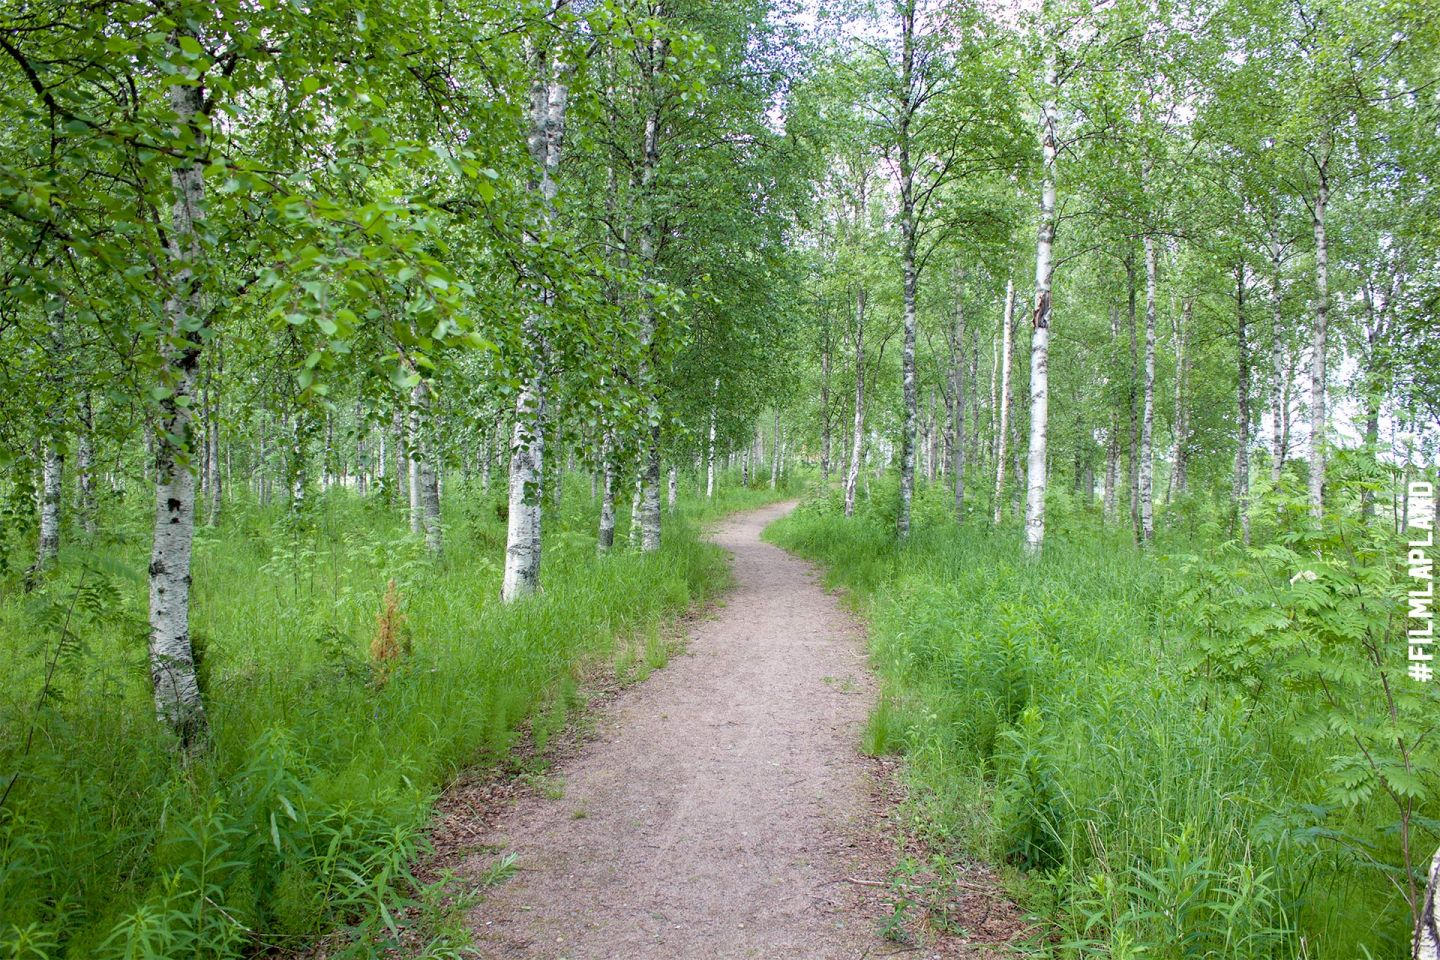 A trail in a green birch forest, Kemijärvi Lapland